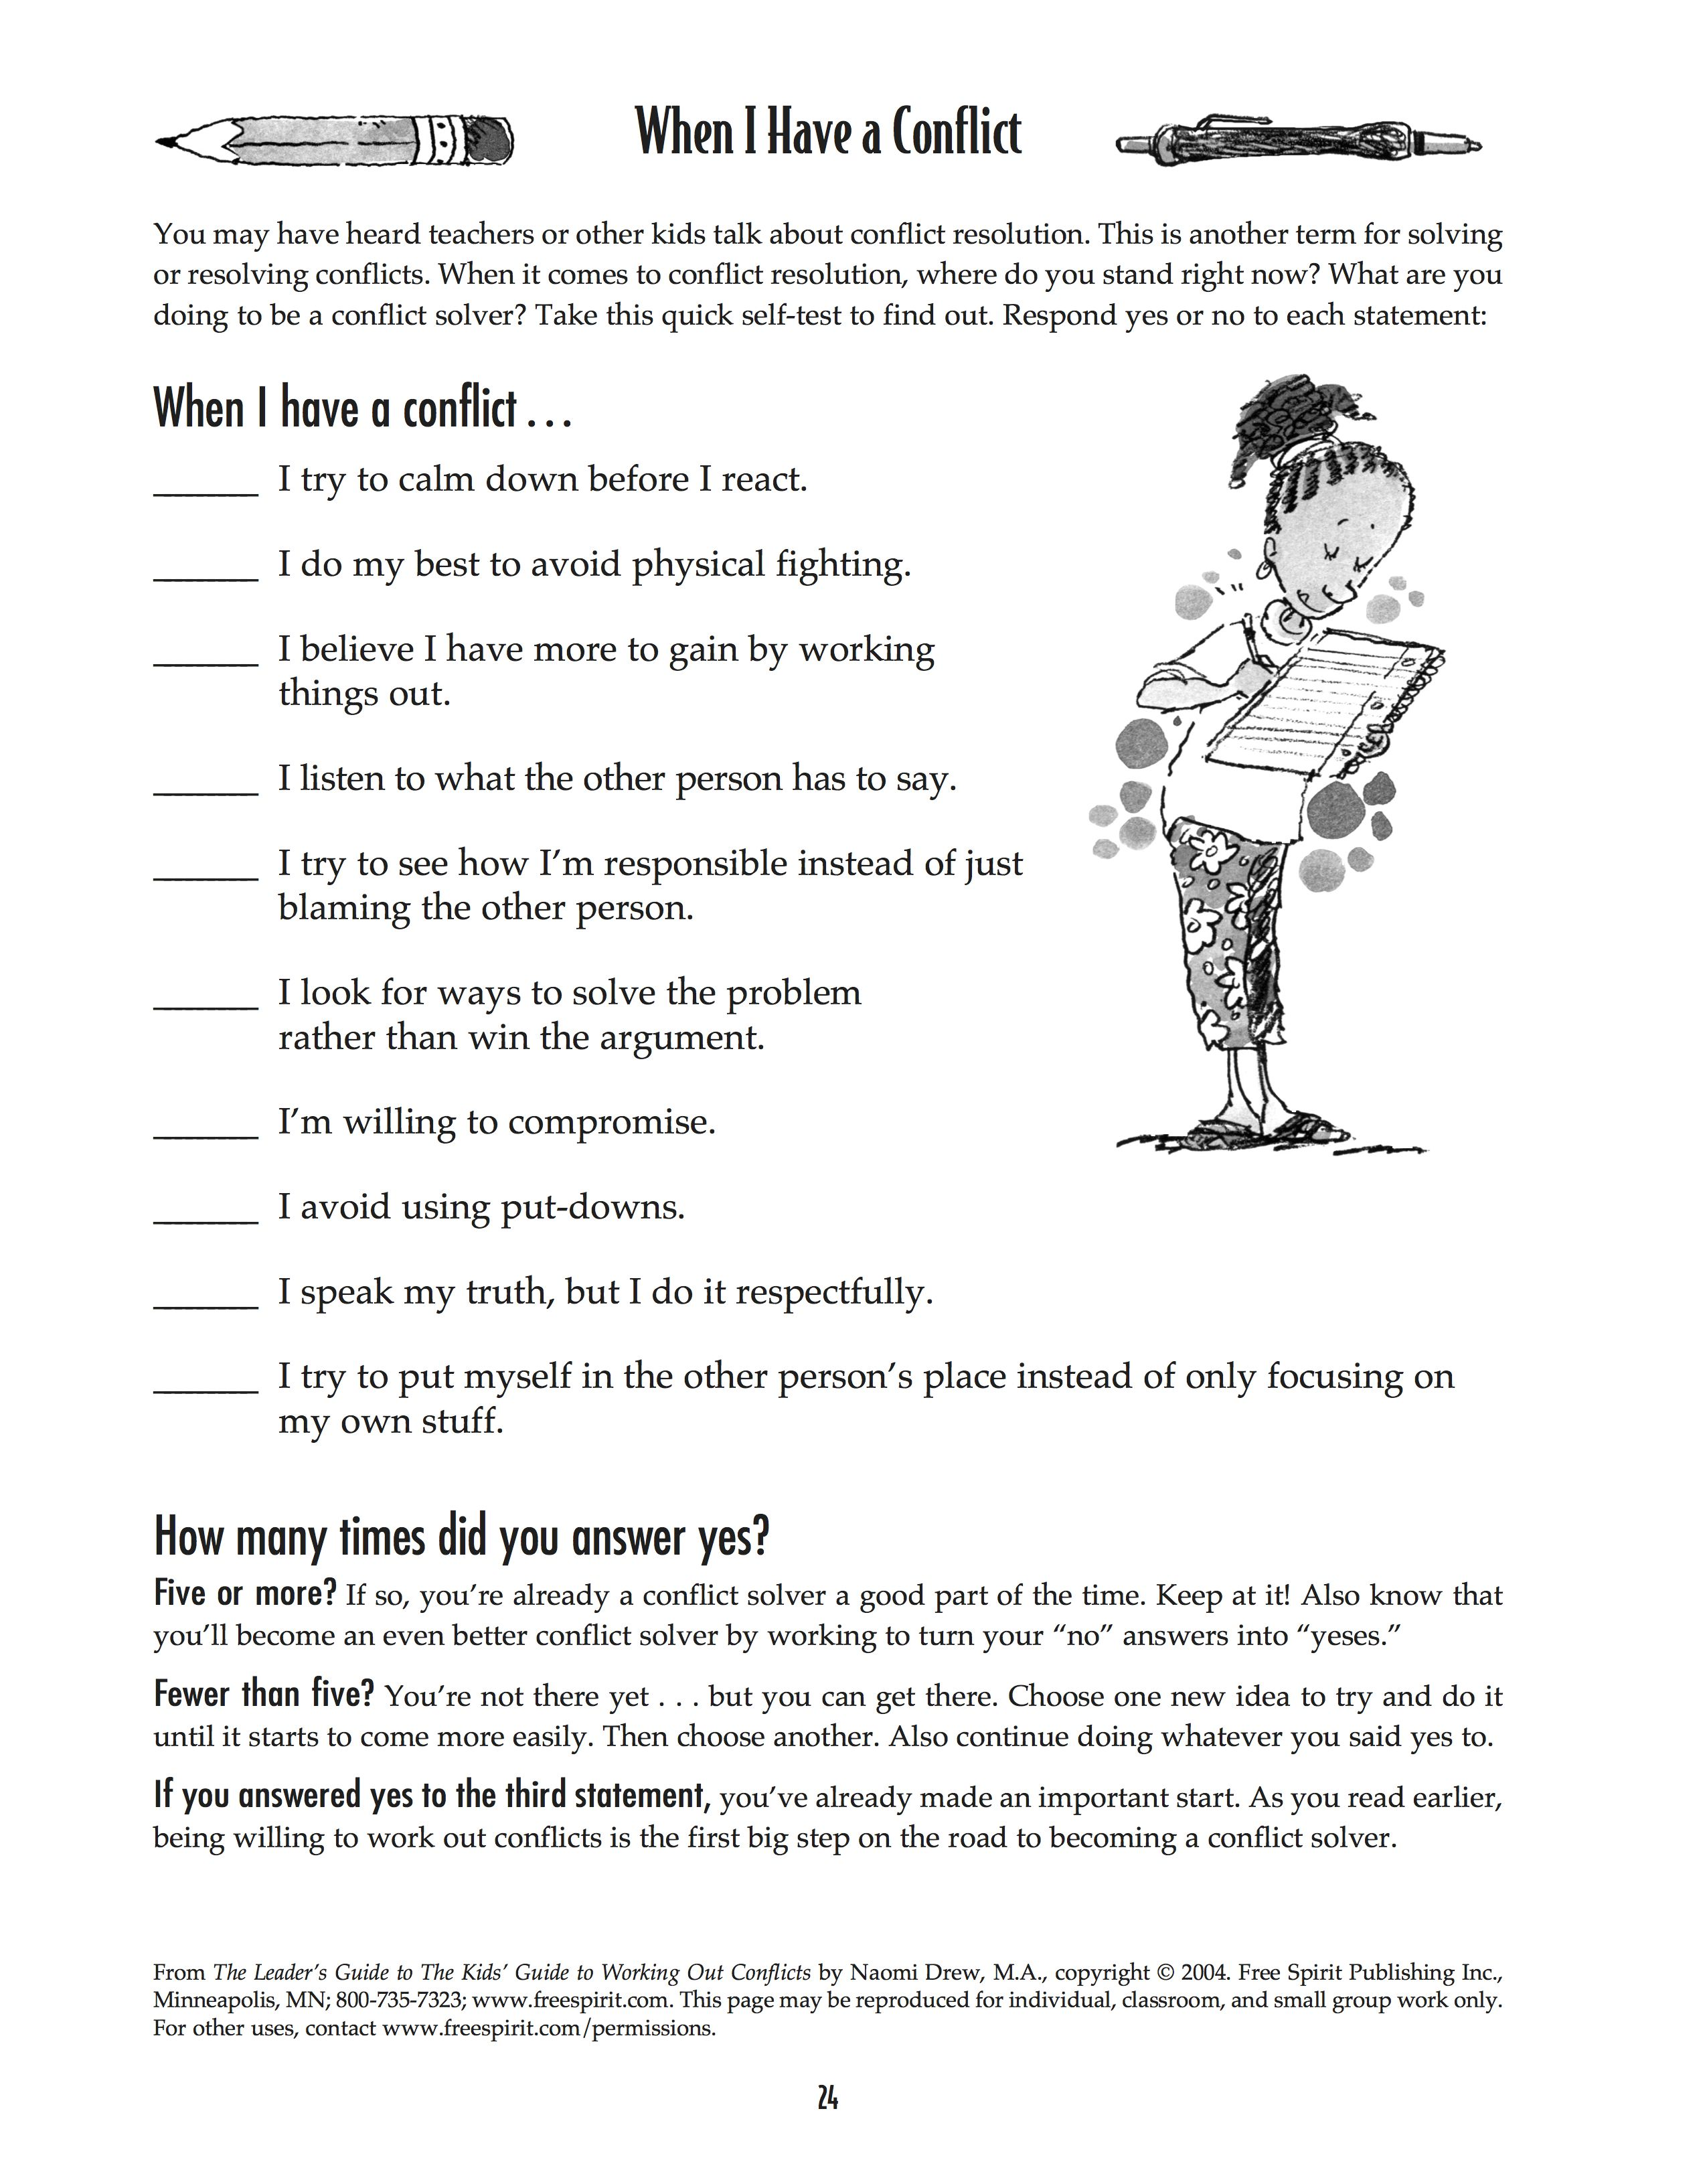 Free Printable Worksheet When I Have A Conflict A Quick Self Test